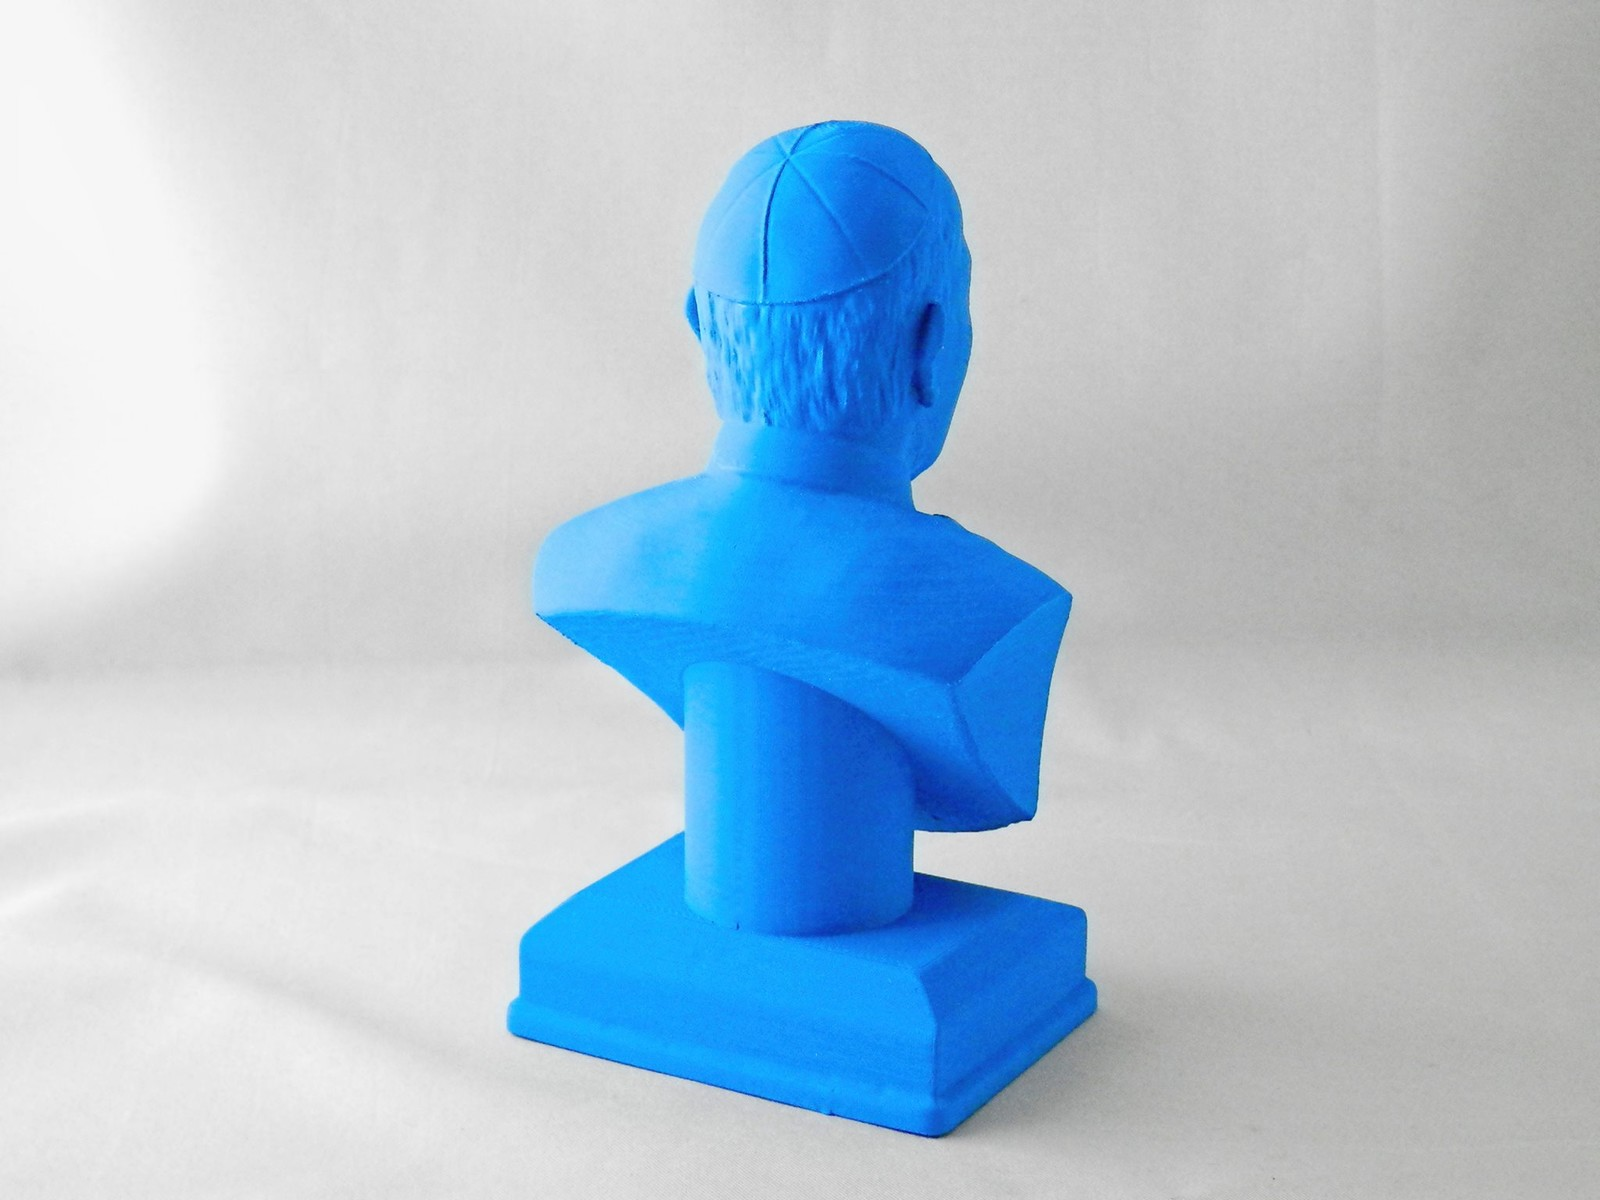 3D printed sculpture, ABS 90 microns, no finishing